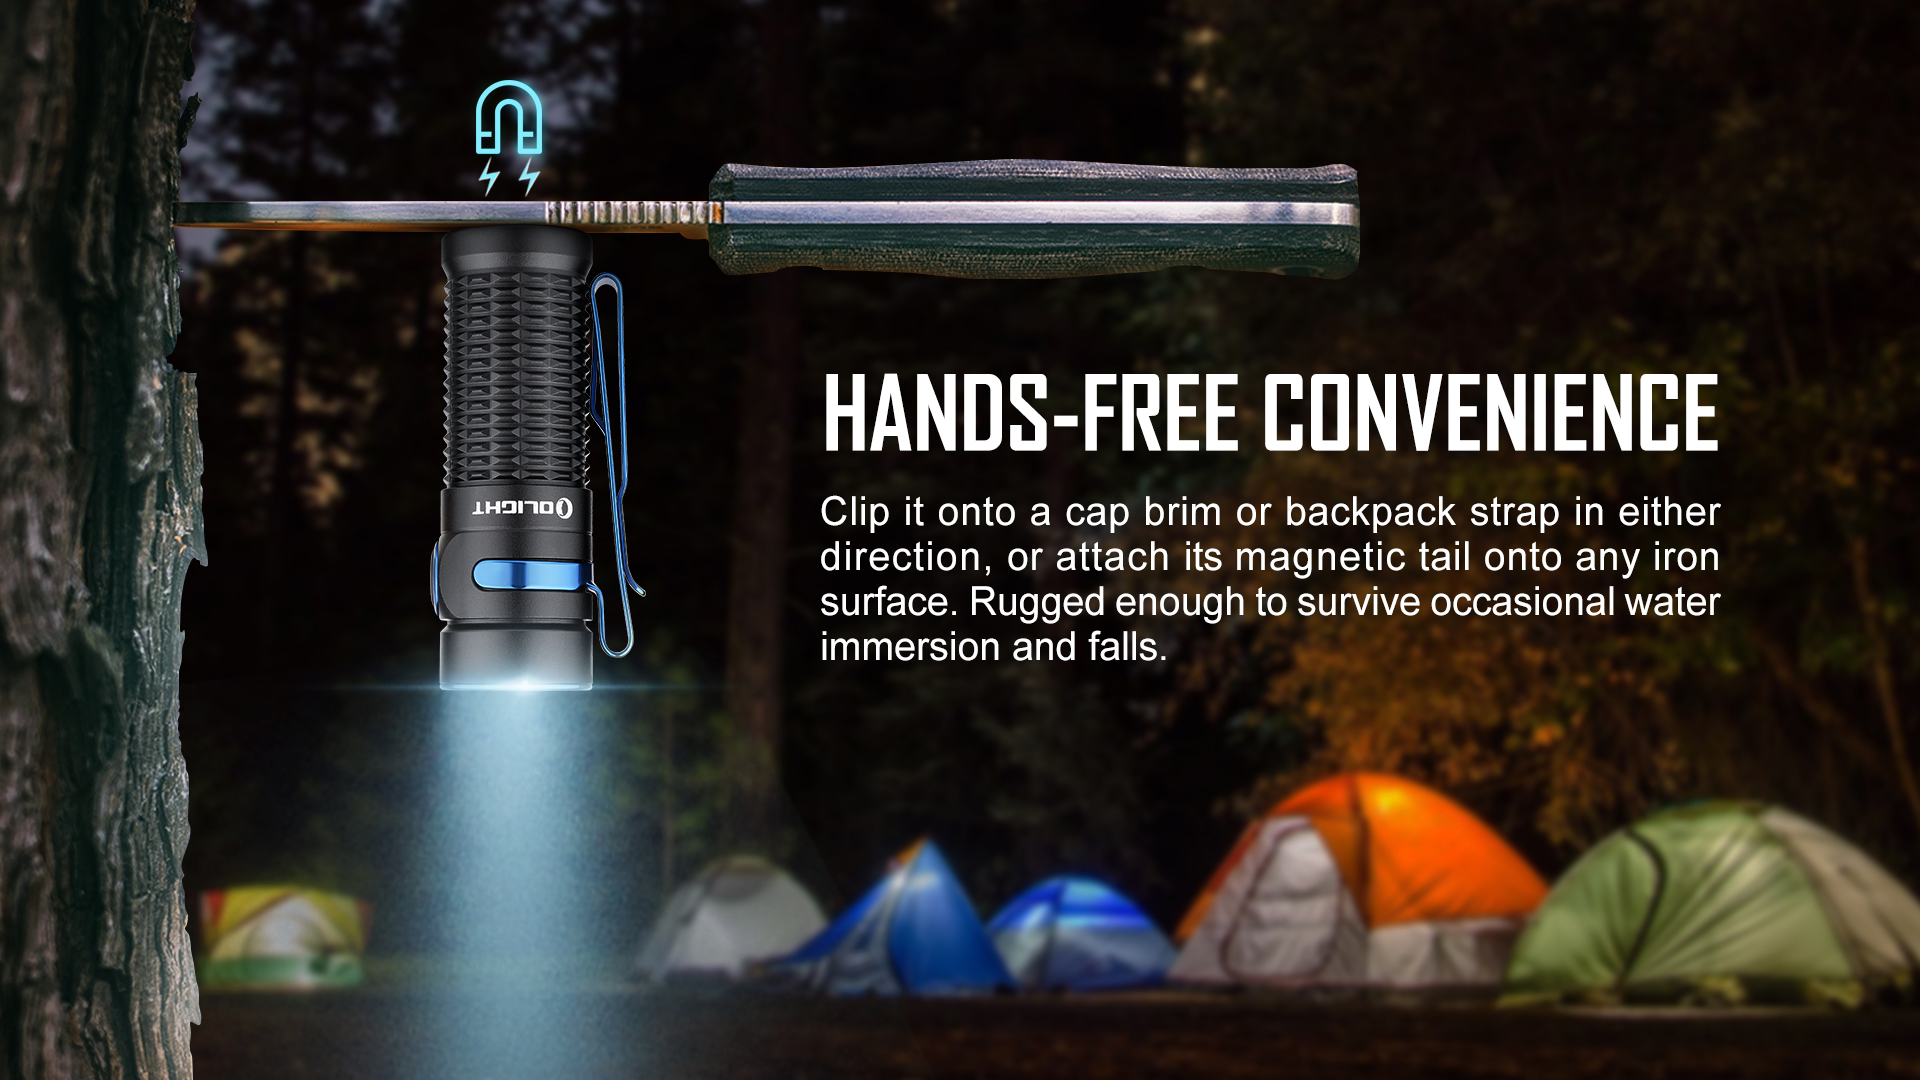 Olight Baton 3 Rechargeable LED Hands-free